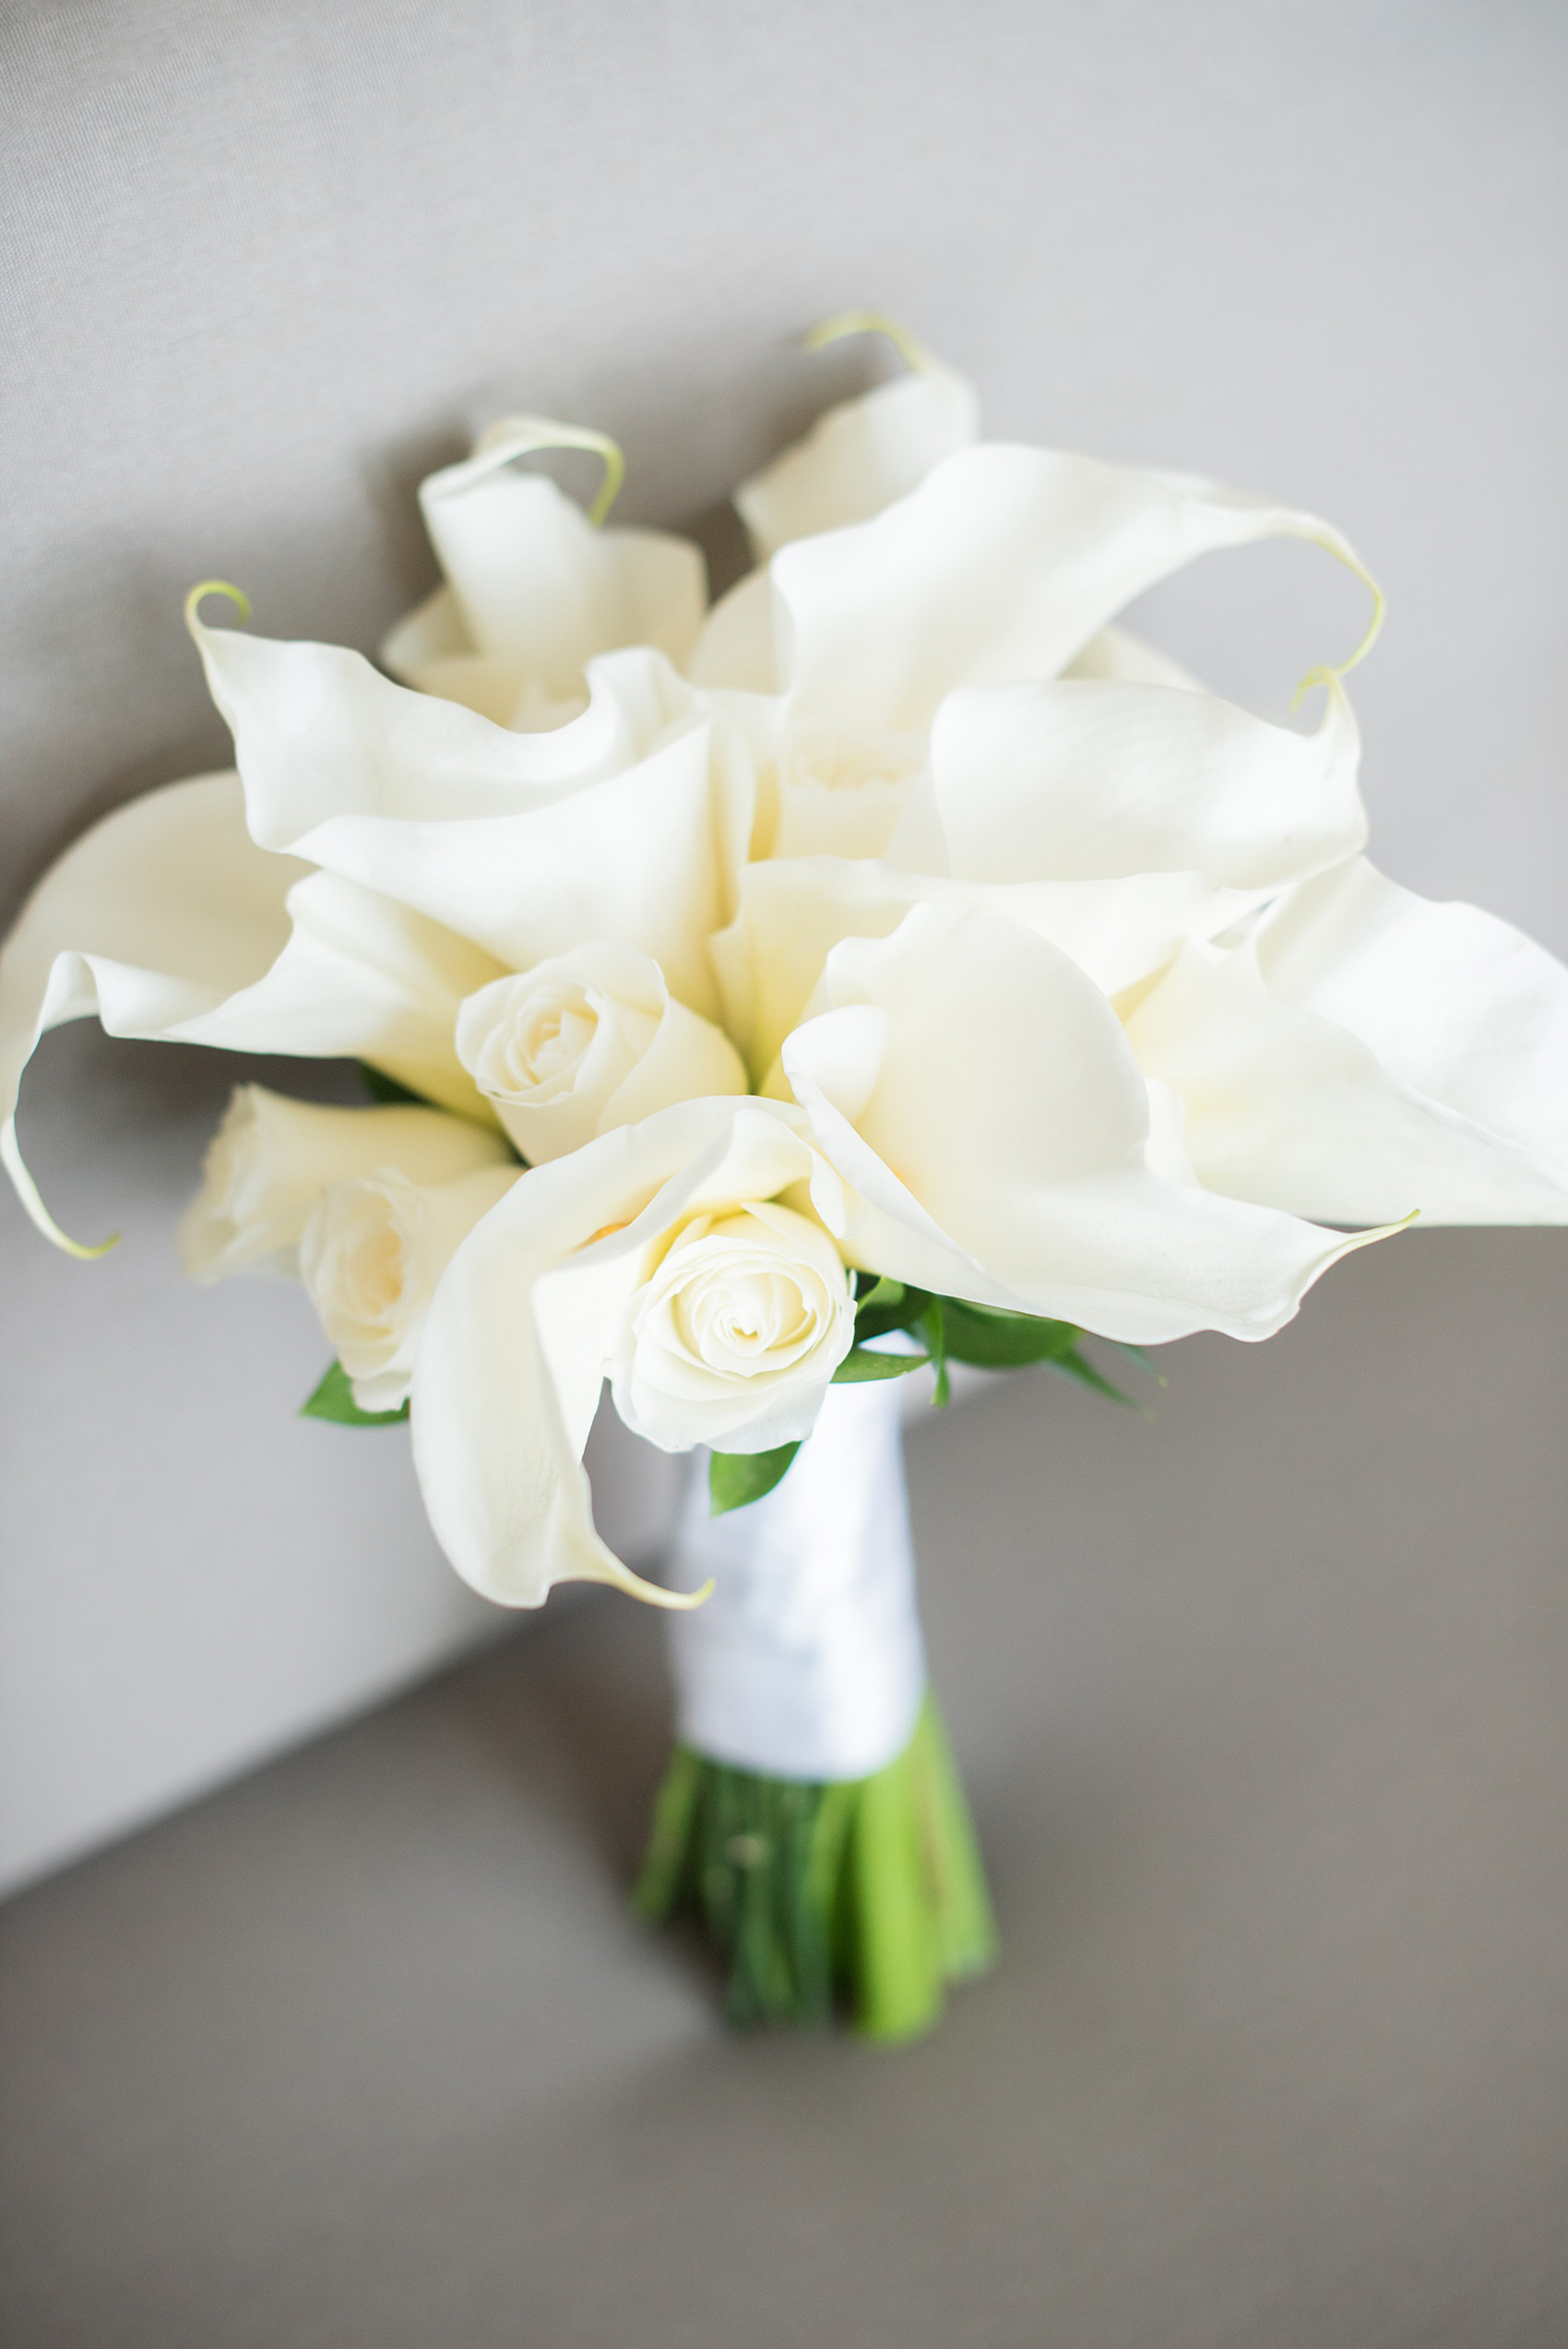 Mikkel Paige Photography photos from a wedding at Grand Paraiso, Mexico, Playa del Carmen Iberostar resort. Picture of the bride's calla lily and rose white bouquet.